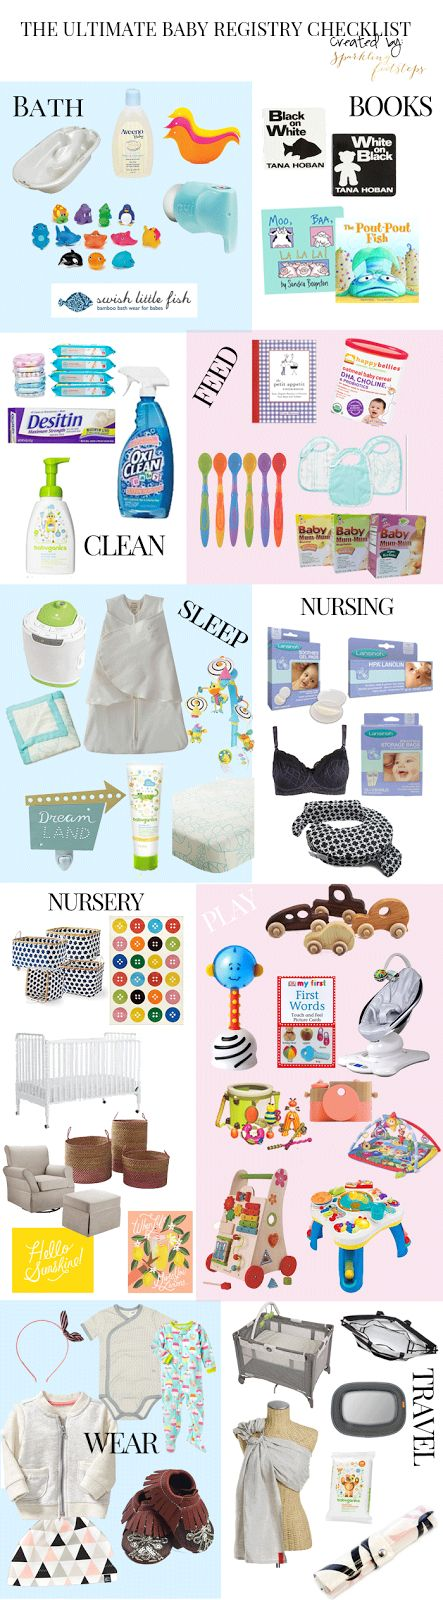 The Ultimate Baby Registry Checklist -- <3 that she mentions BabyList!